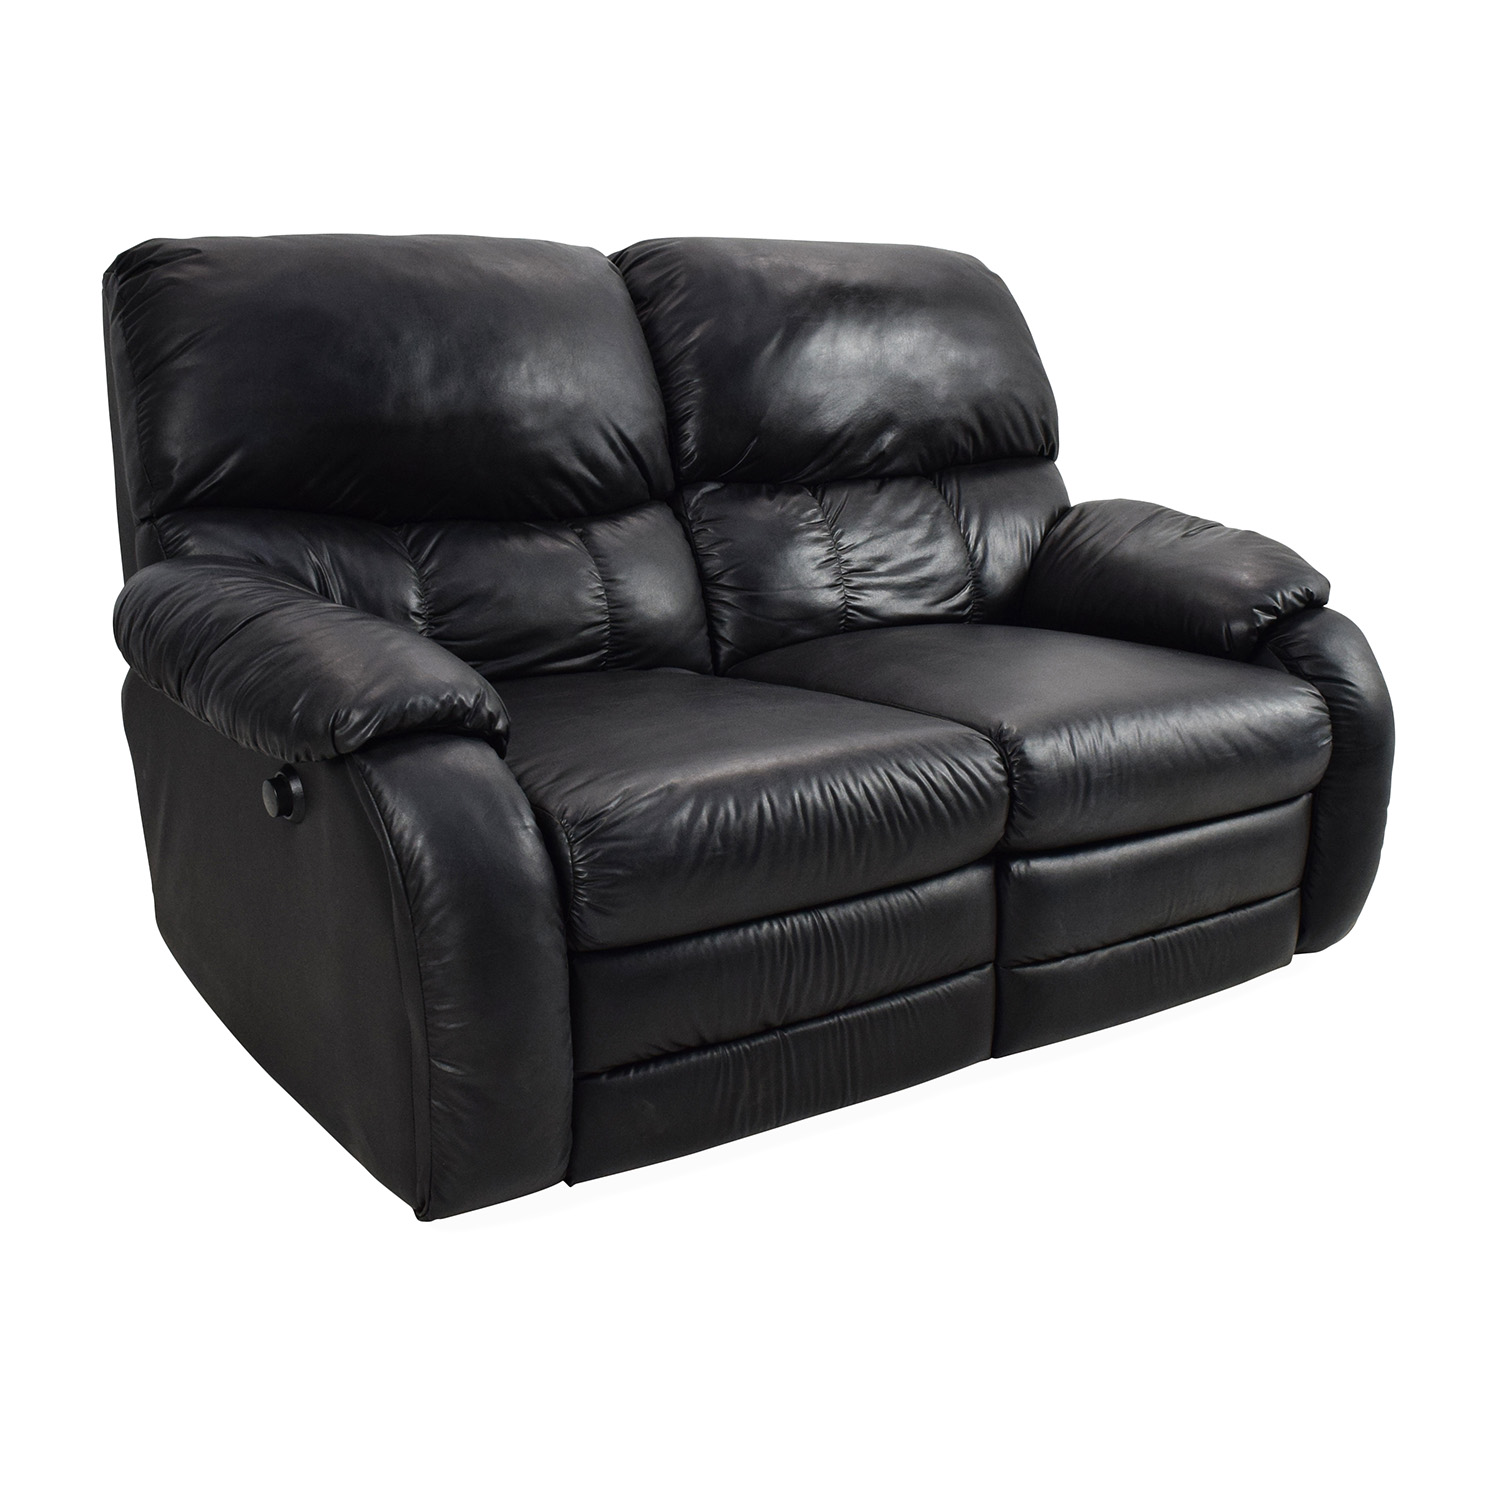 68 Off Black Leather Reclining 2 Seater Sofas